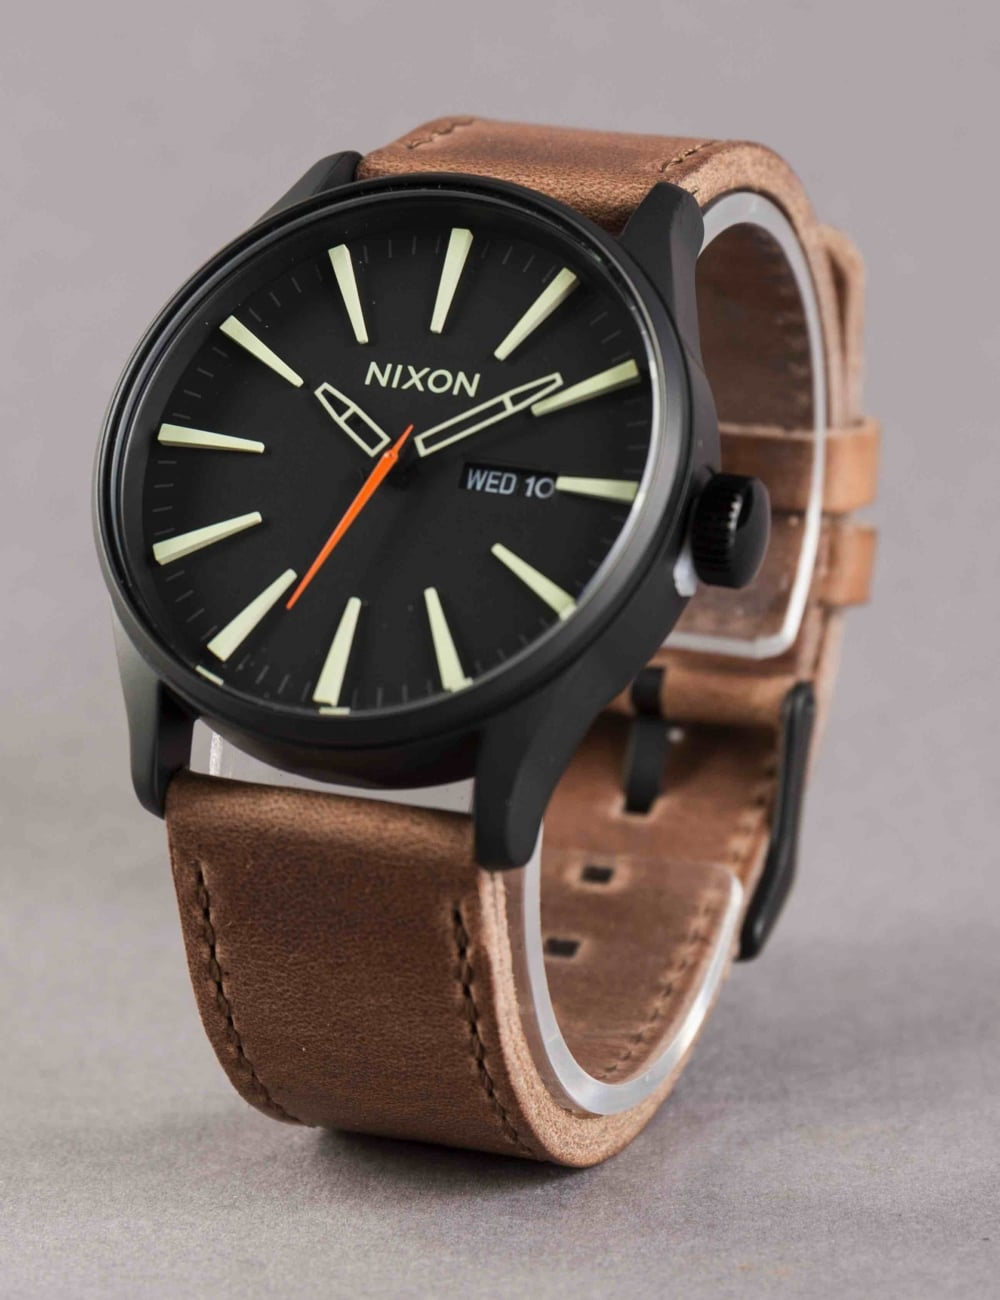 b0e121381 Nixon Sentry Leather Watch - Black/Lum/Taupe - Accessories from Fat ...